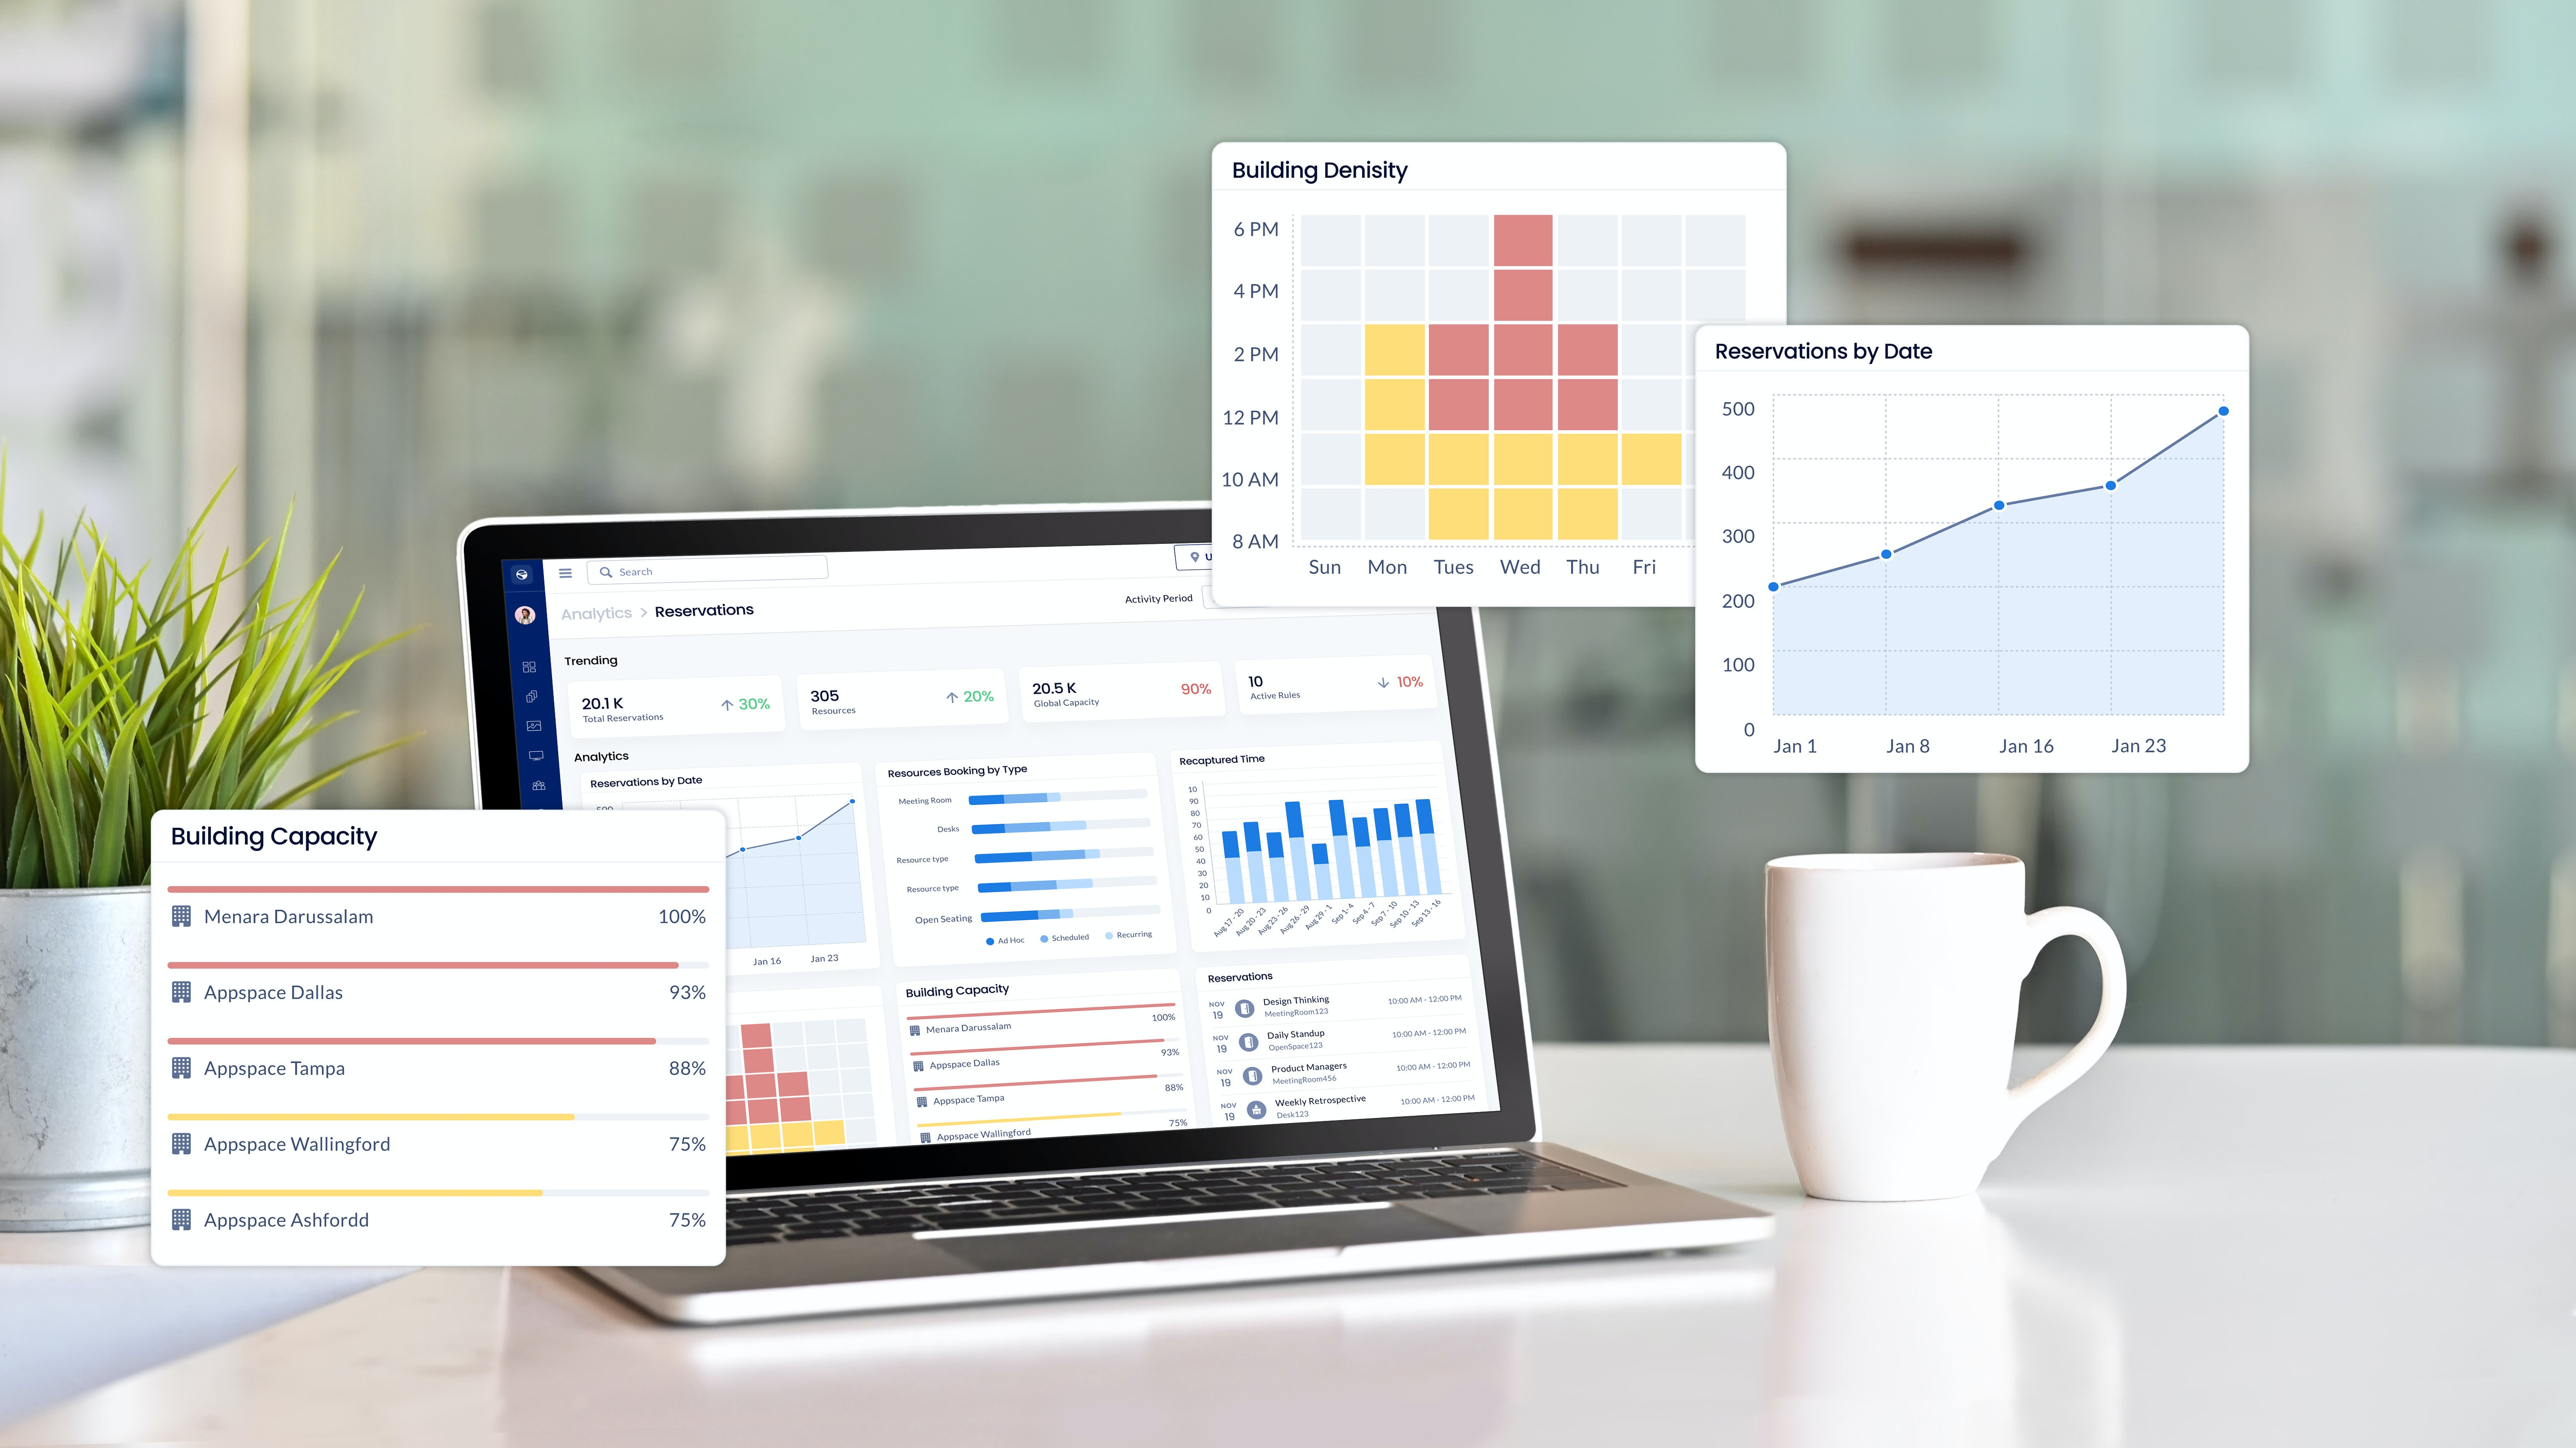 Appspace Software - Analytics and reporting to help oversee your office space and what improvements could be made to make it even better.